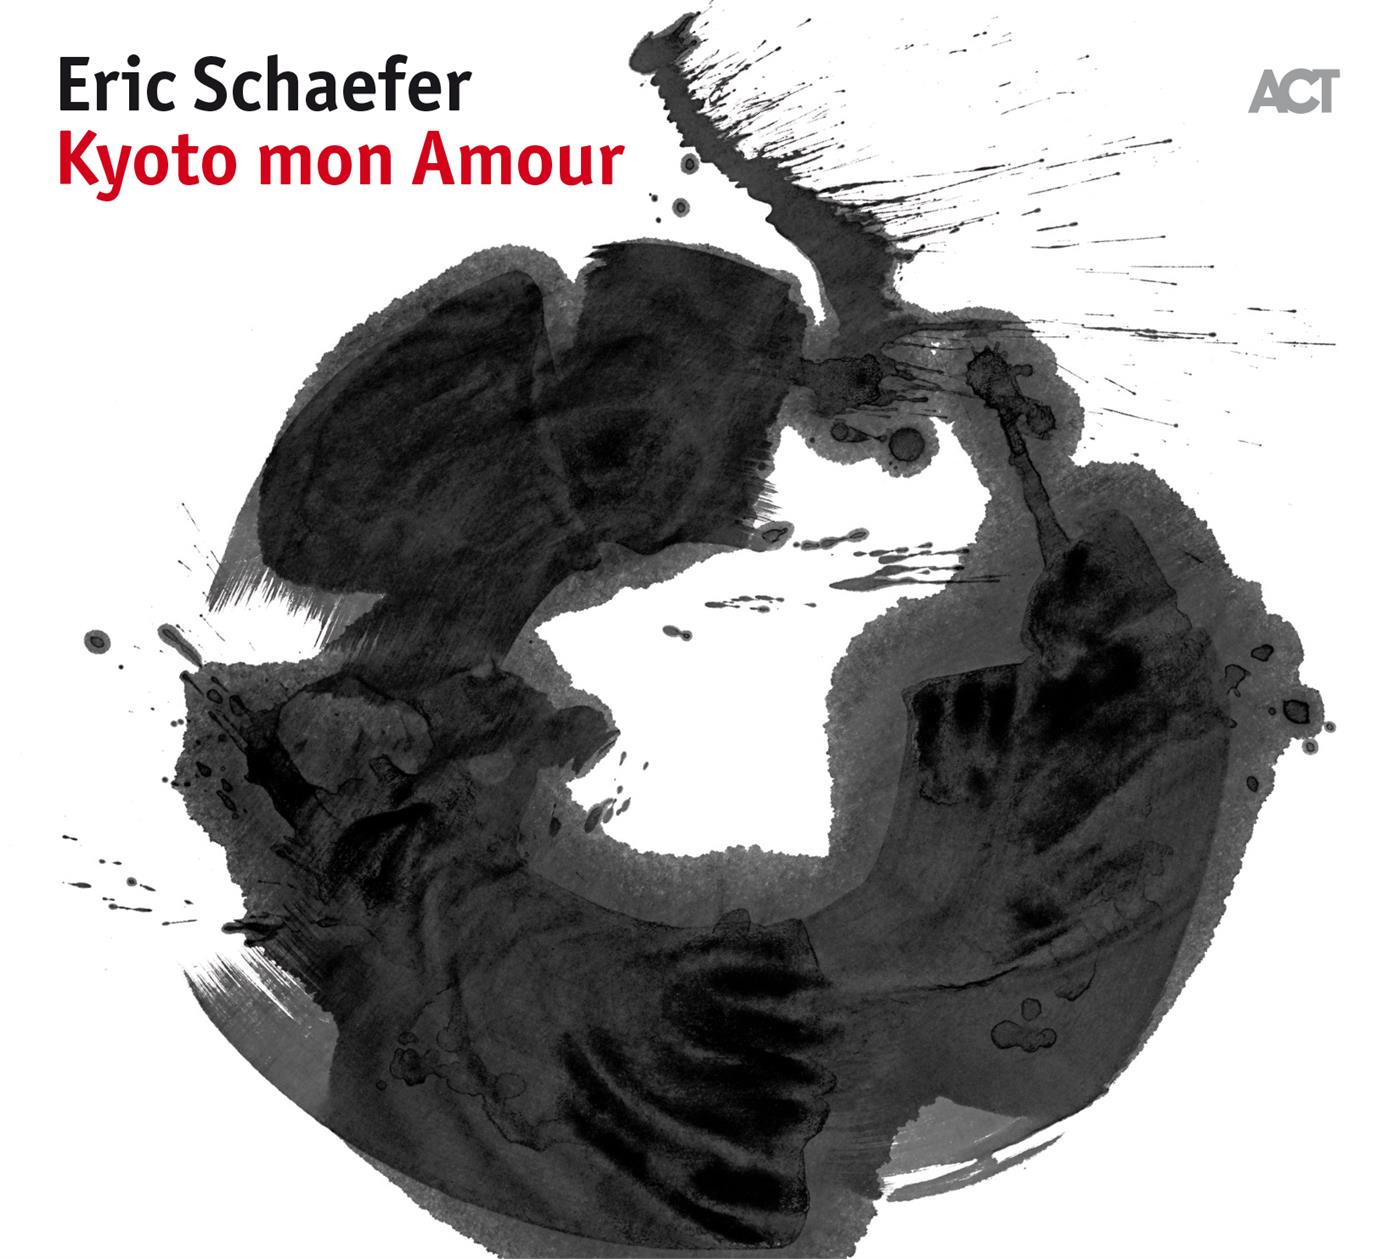 ACT98351 ACT  Eric Schaefer Kyoto mon Amour (LP)